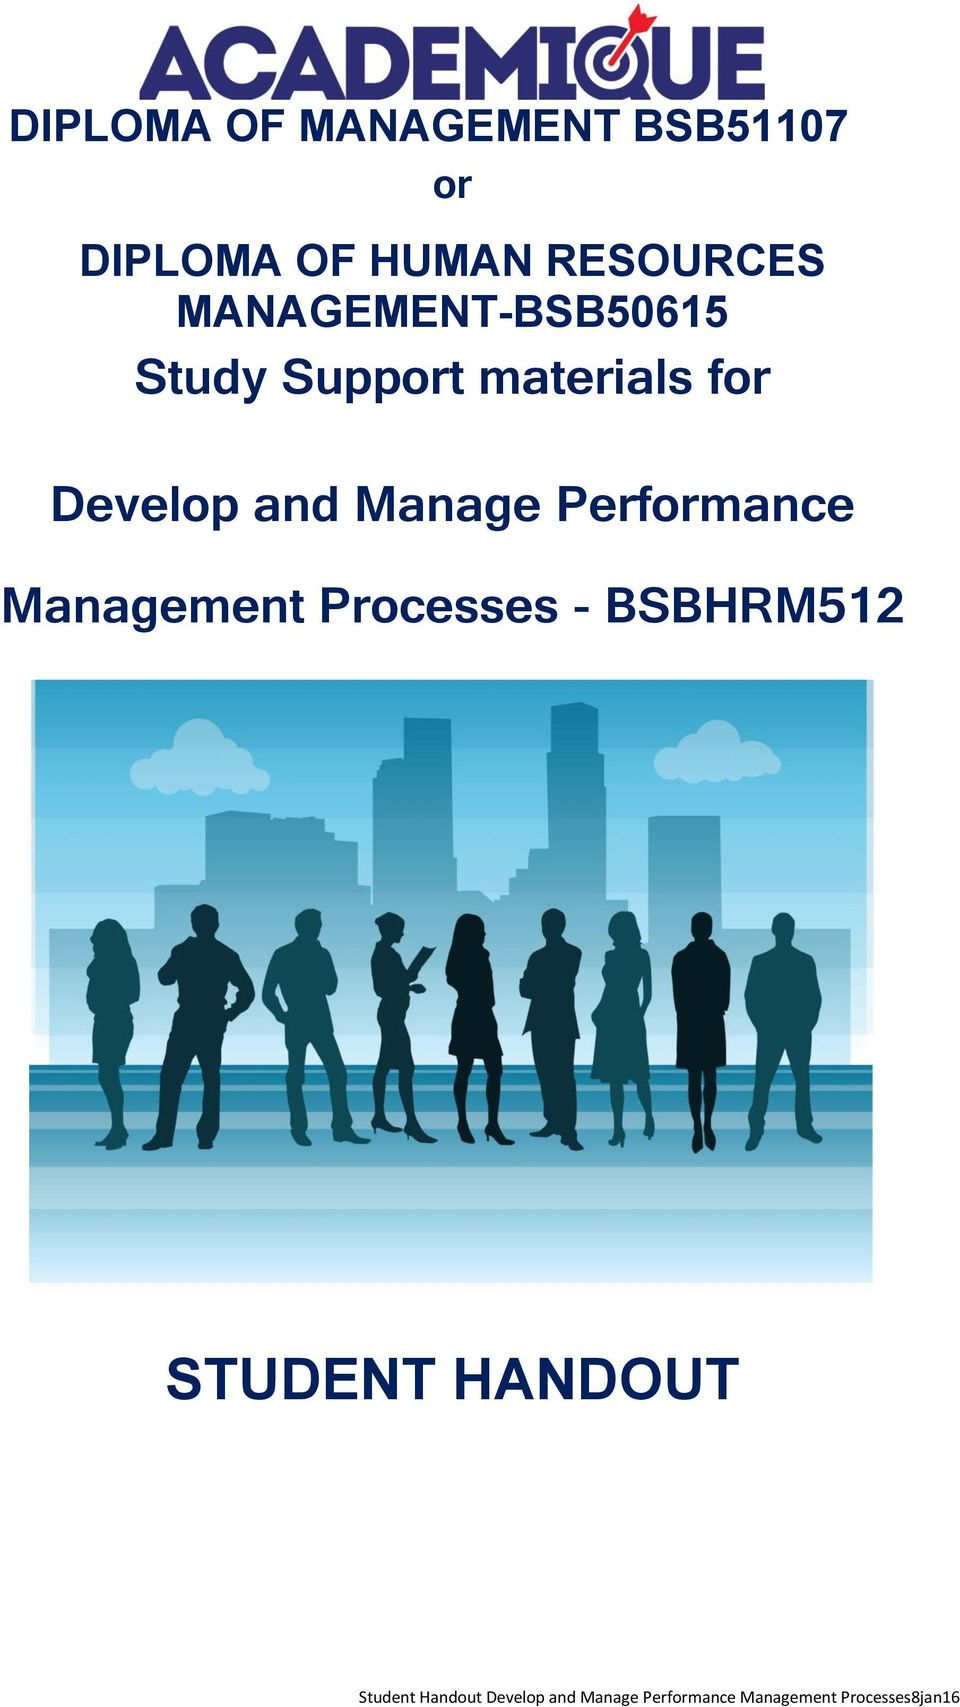 Support materials for Develop and Manage